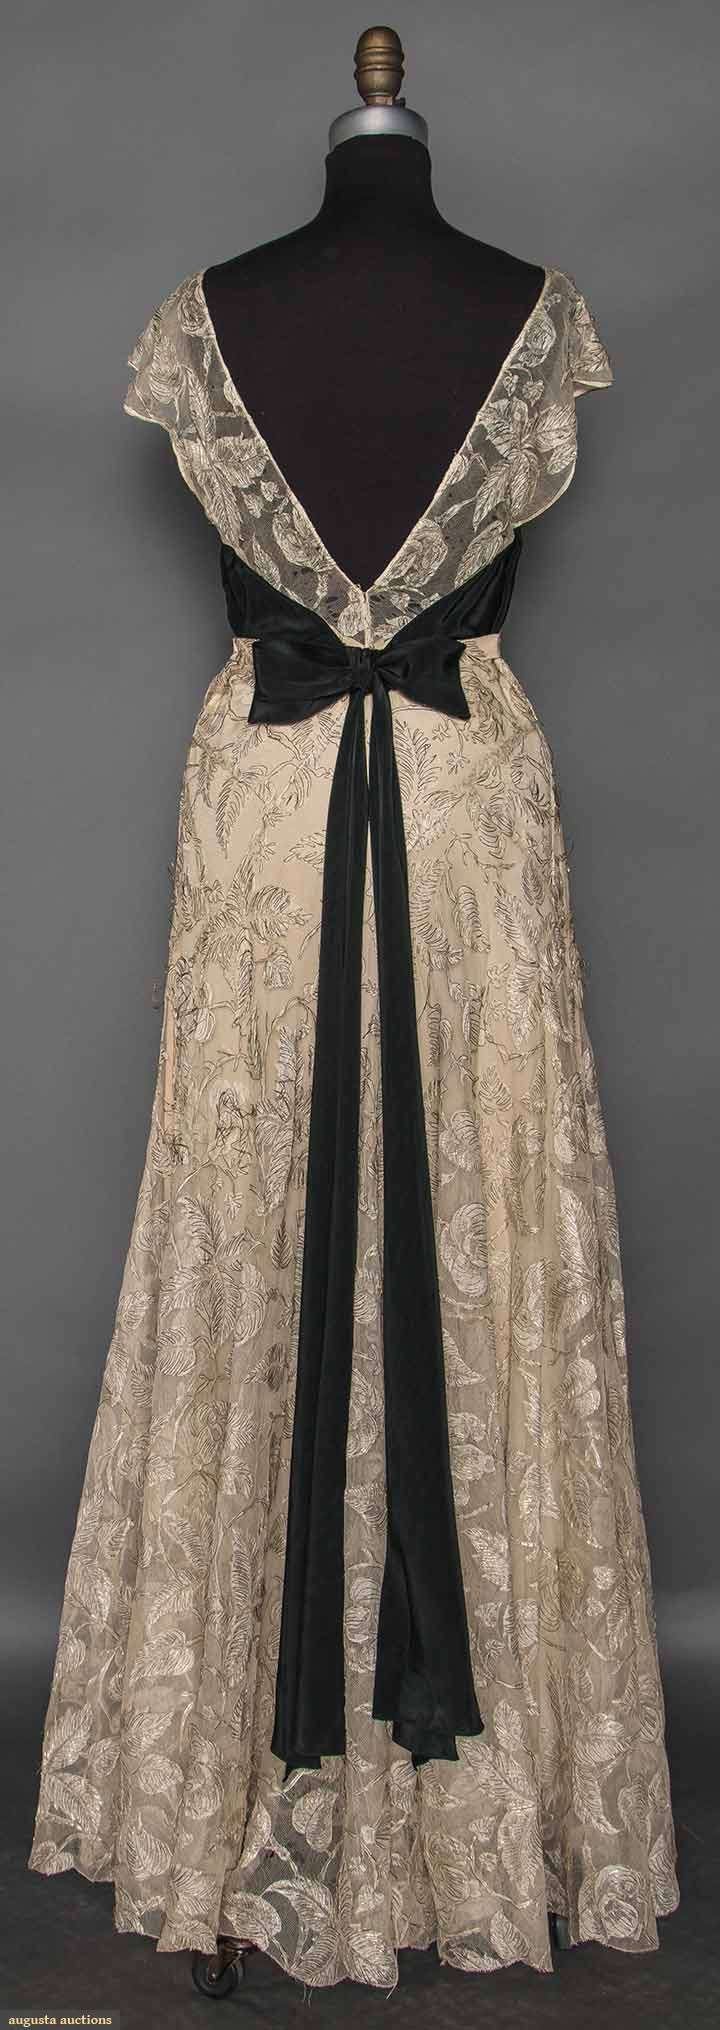 chanel couture lace gown c 1935 back view white lace in overall foliage blossom pattern. Black Bedroom Furniture Sets. Home Design Ideas